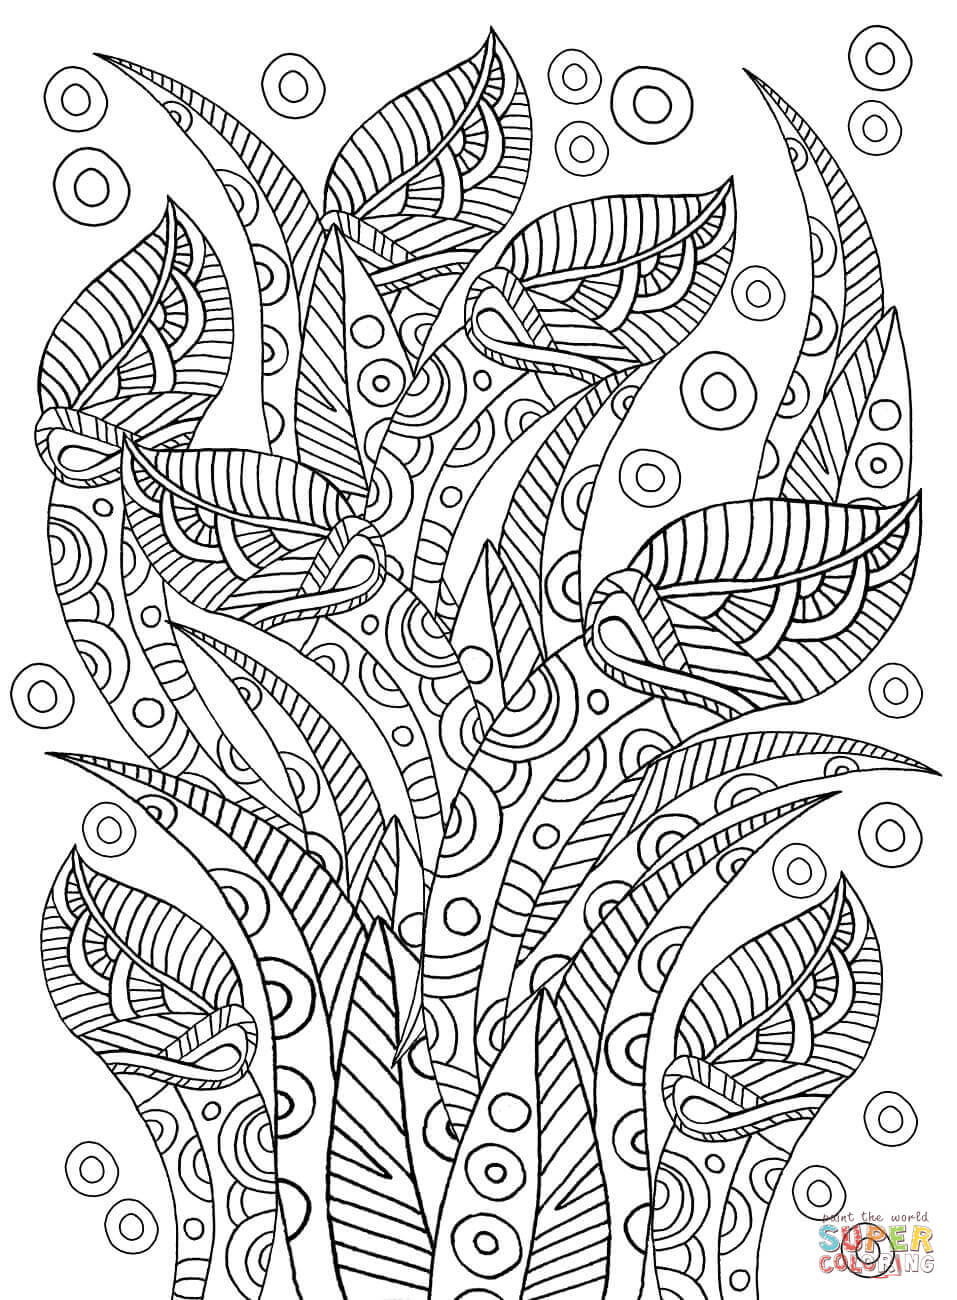 free coloring patterns floral pattern coloring page free printable coloring pages free patterns coloring